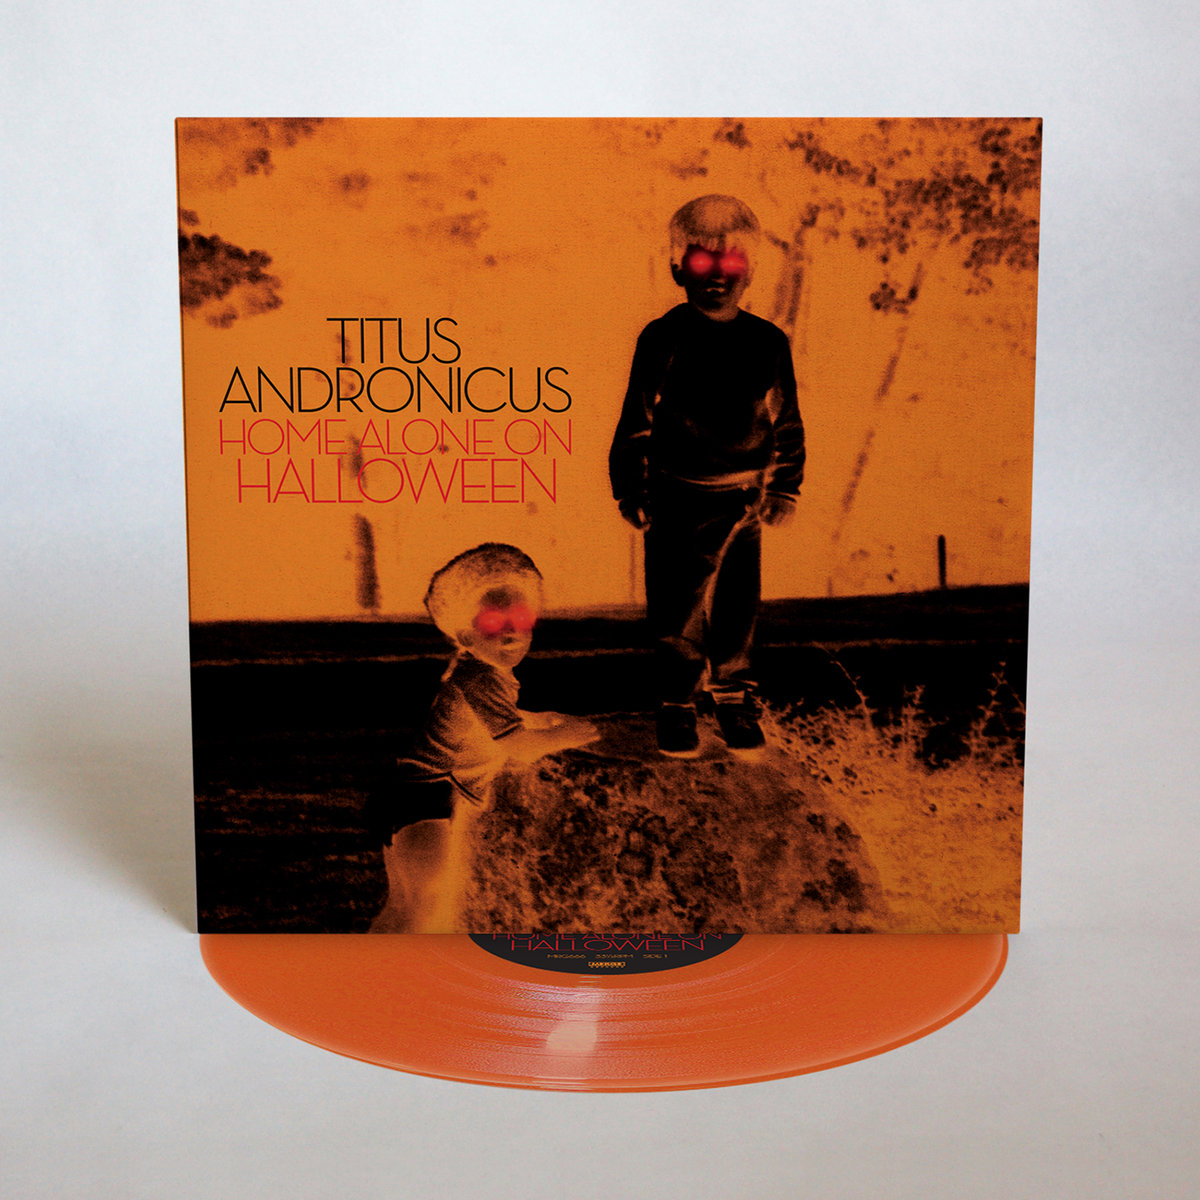 home alone on halloween | titus andronicus